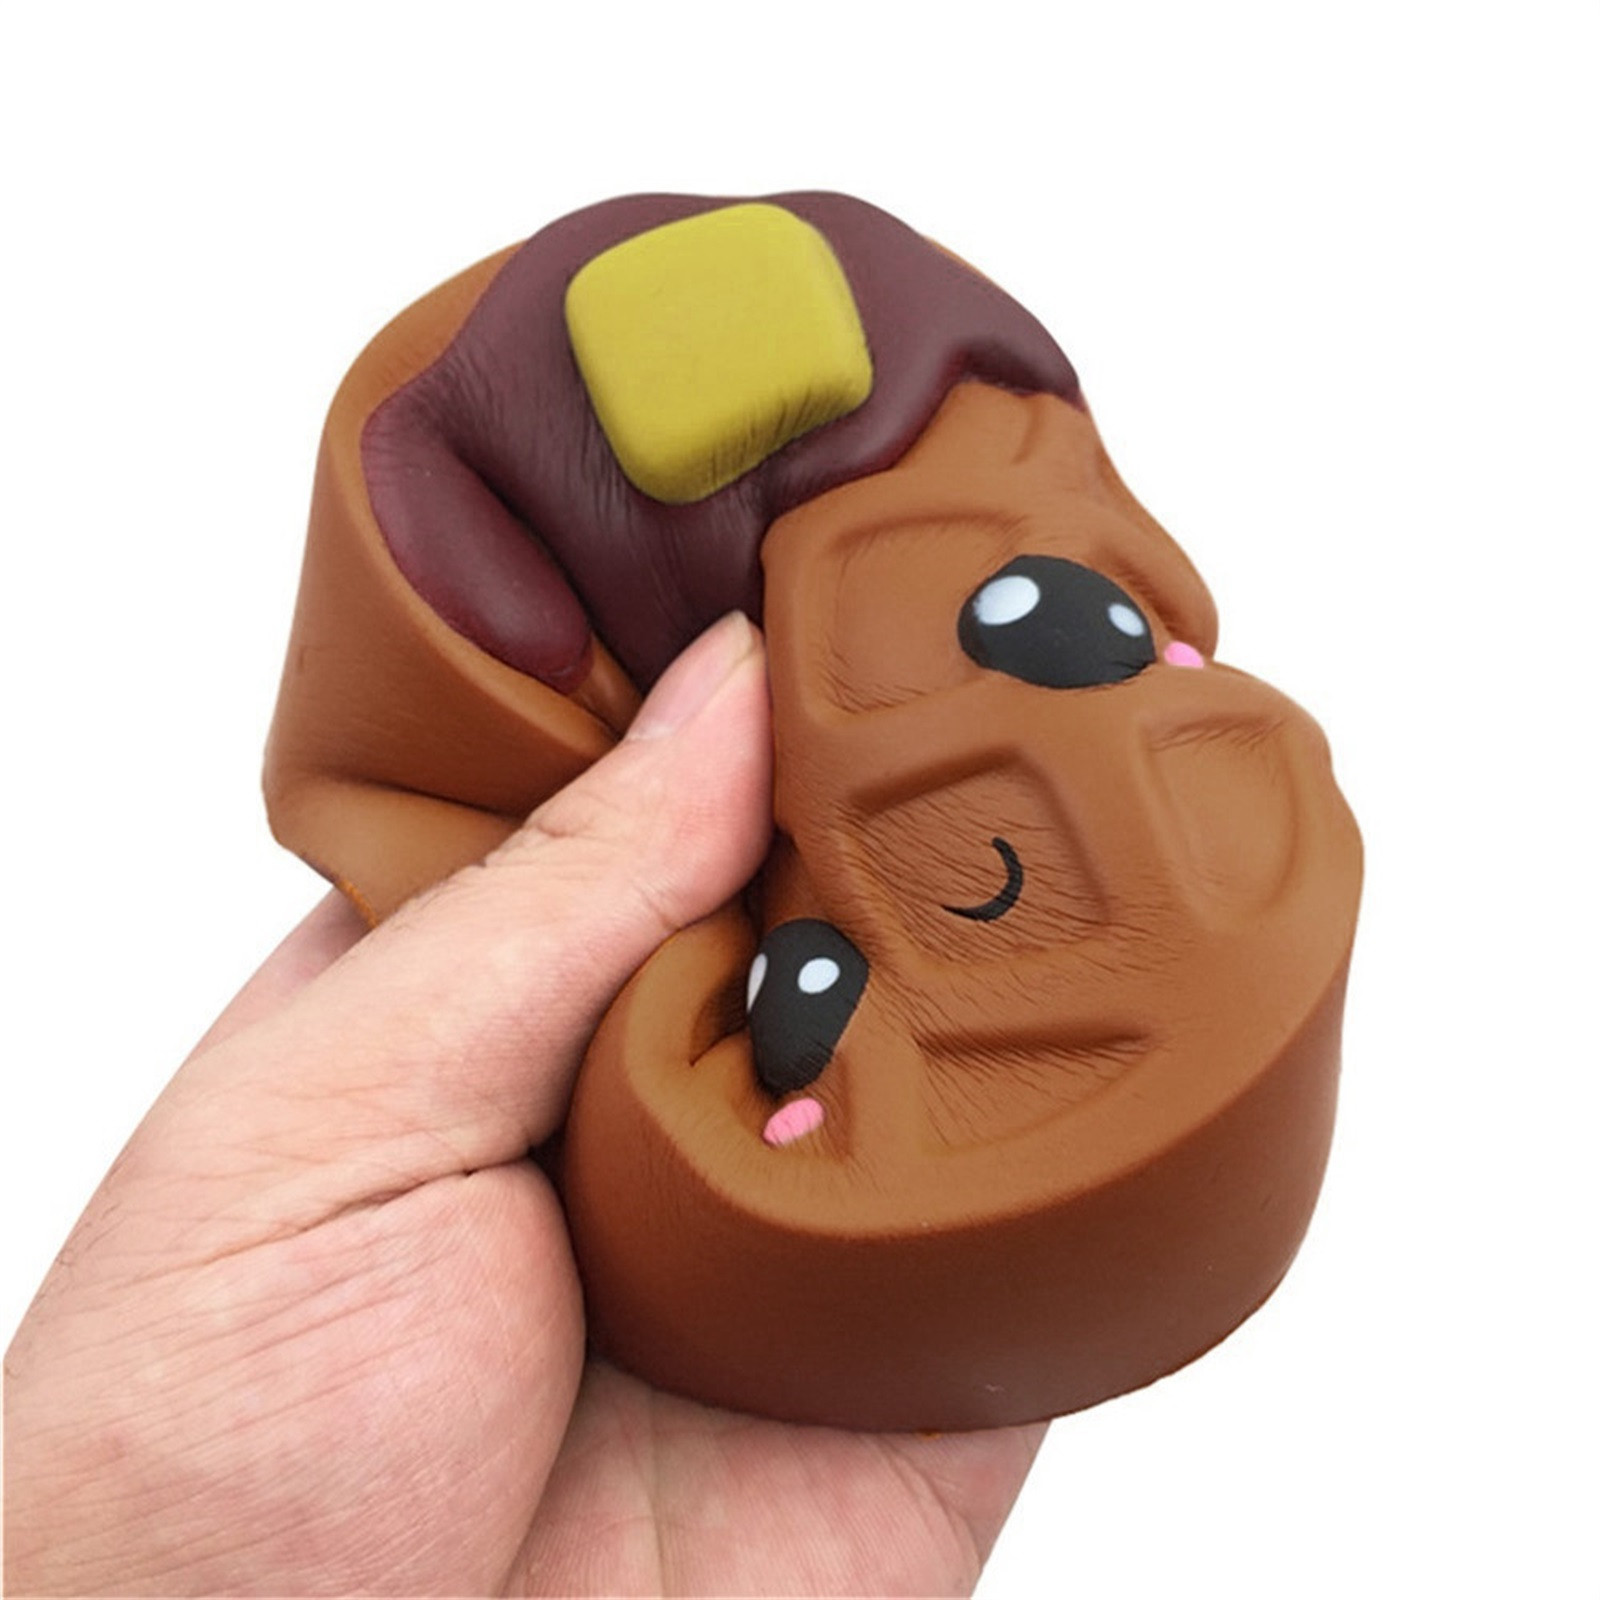 Gift Toy Fidget-Toys Biscuits Antistress-Gadget Chocolates Soft Squishy Cute Kawaii Decompression img4